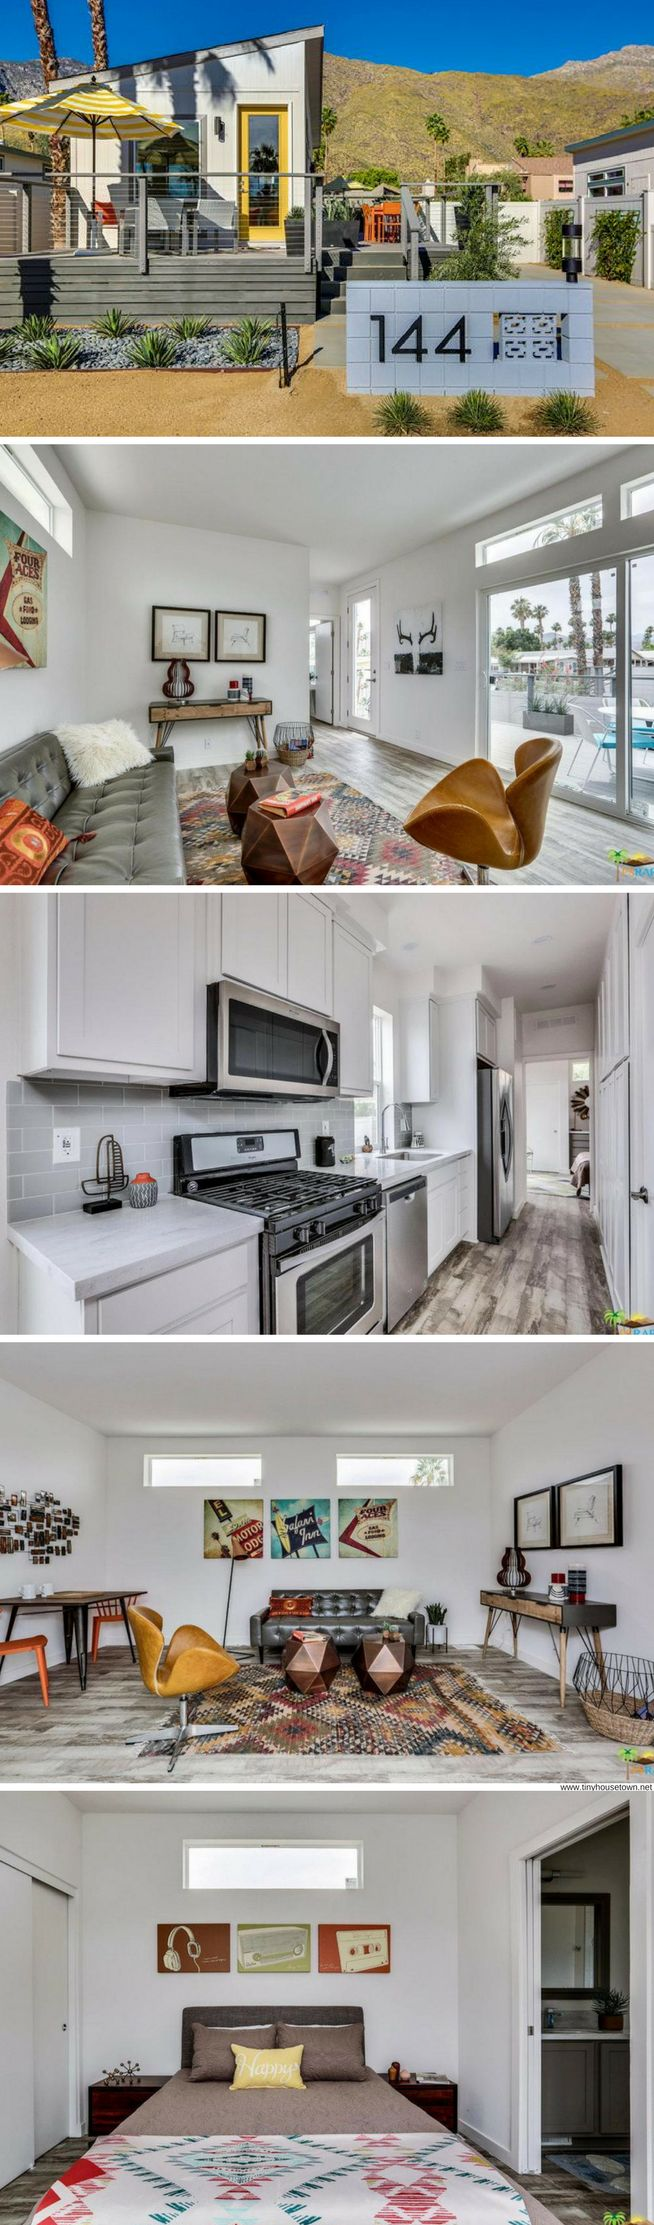 Palm Canyon Pre-Fab Home: features two bedrooms, two bathrooms, and 800-sq-ft of beautifully designed space!